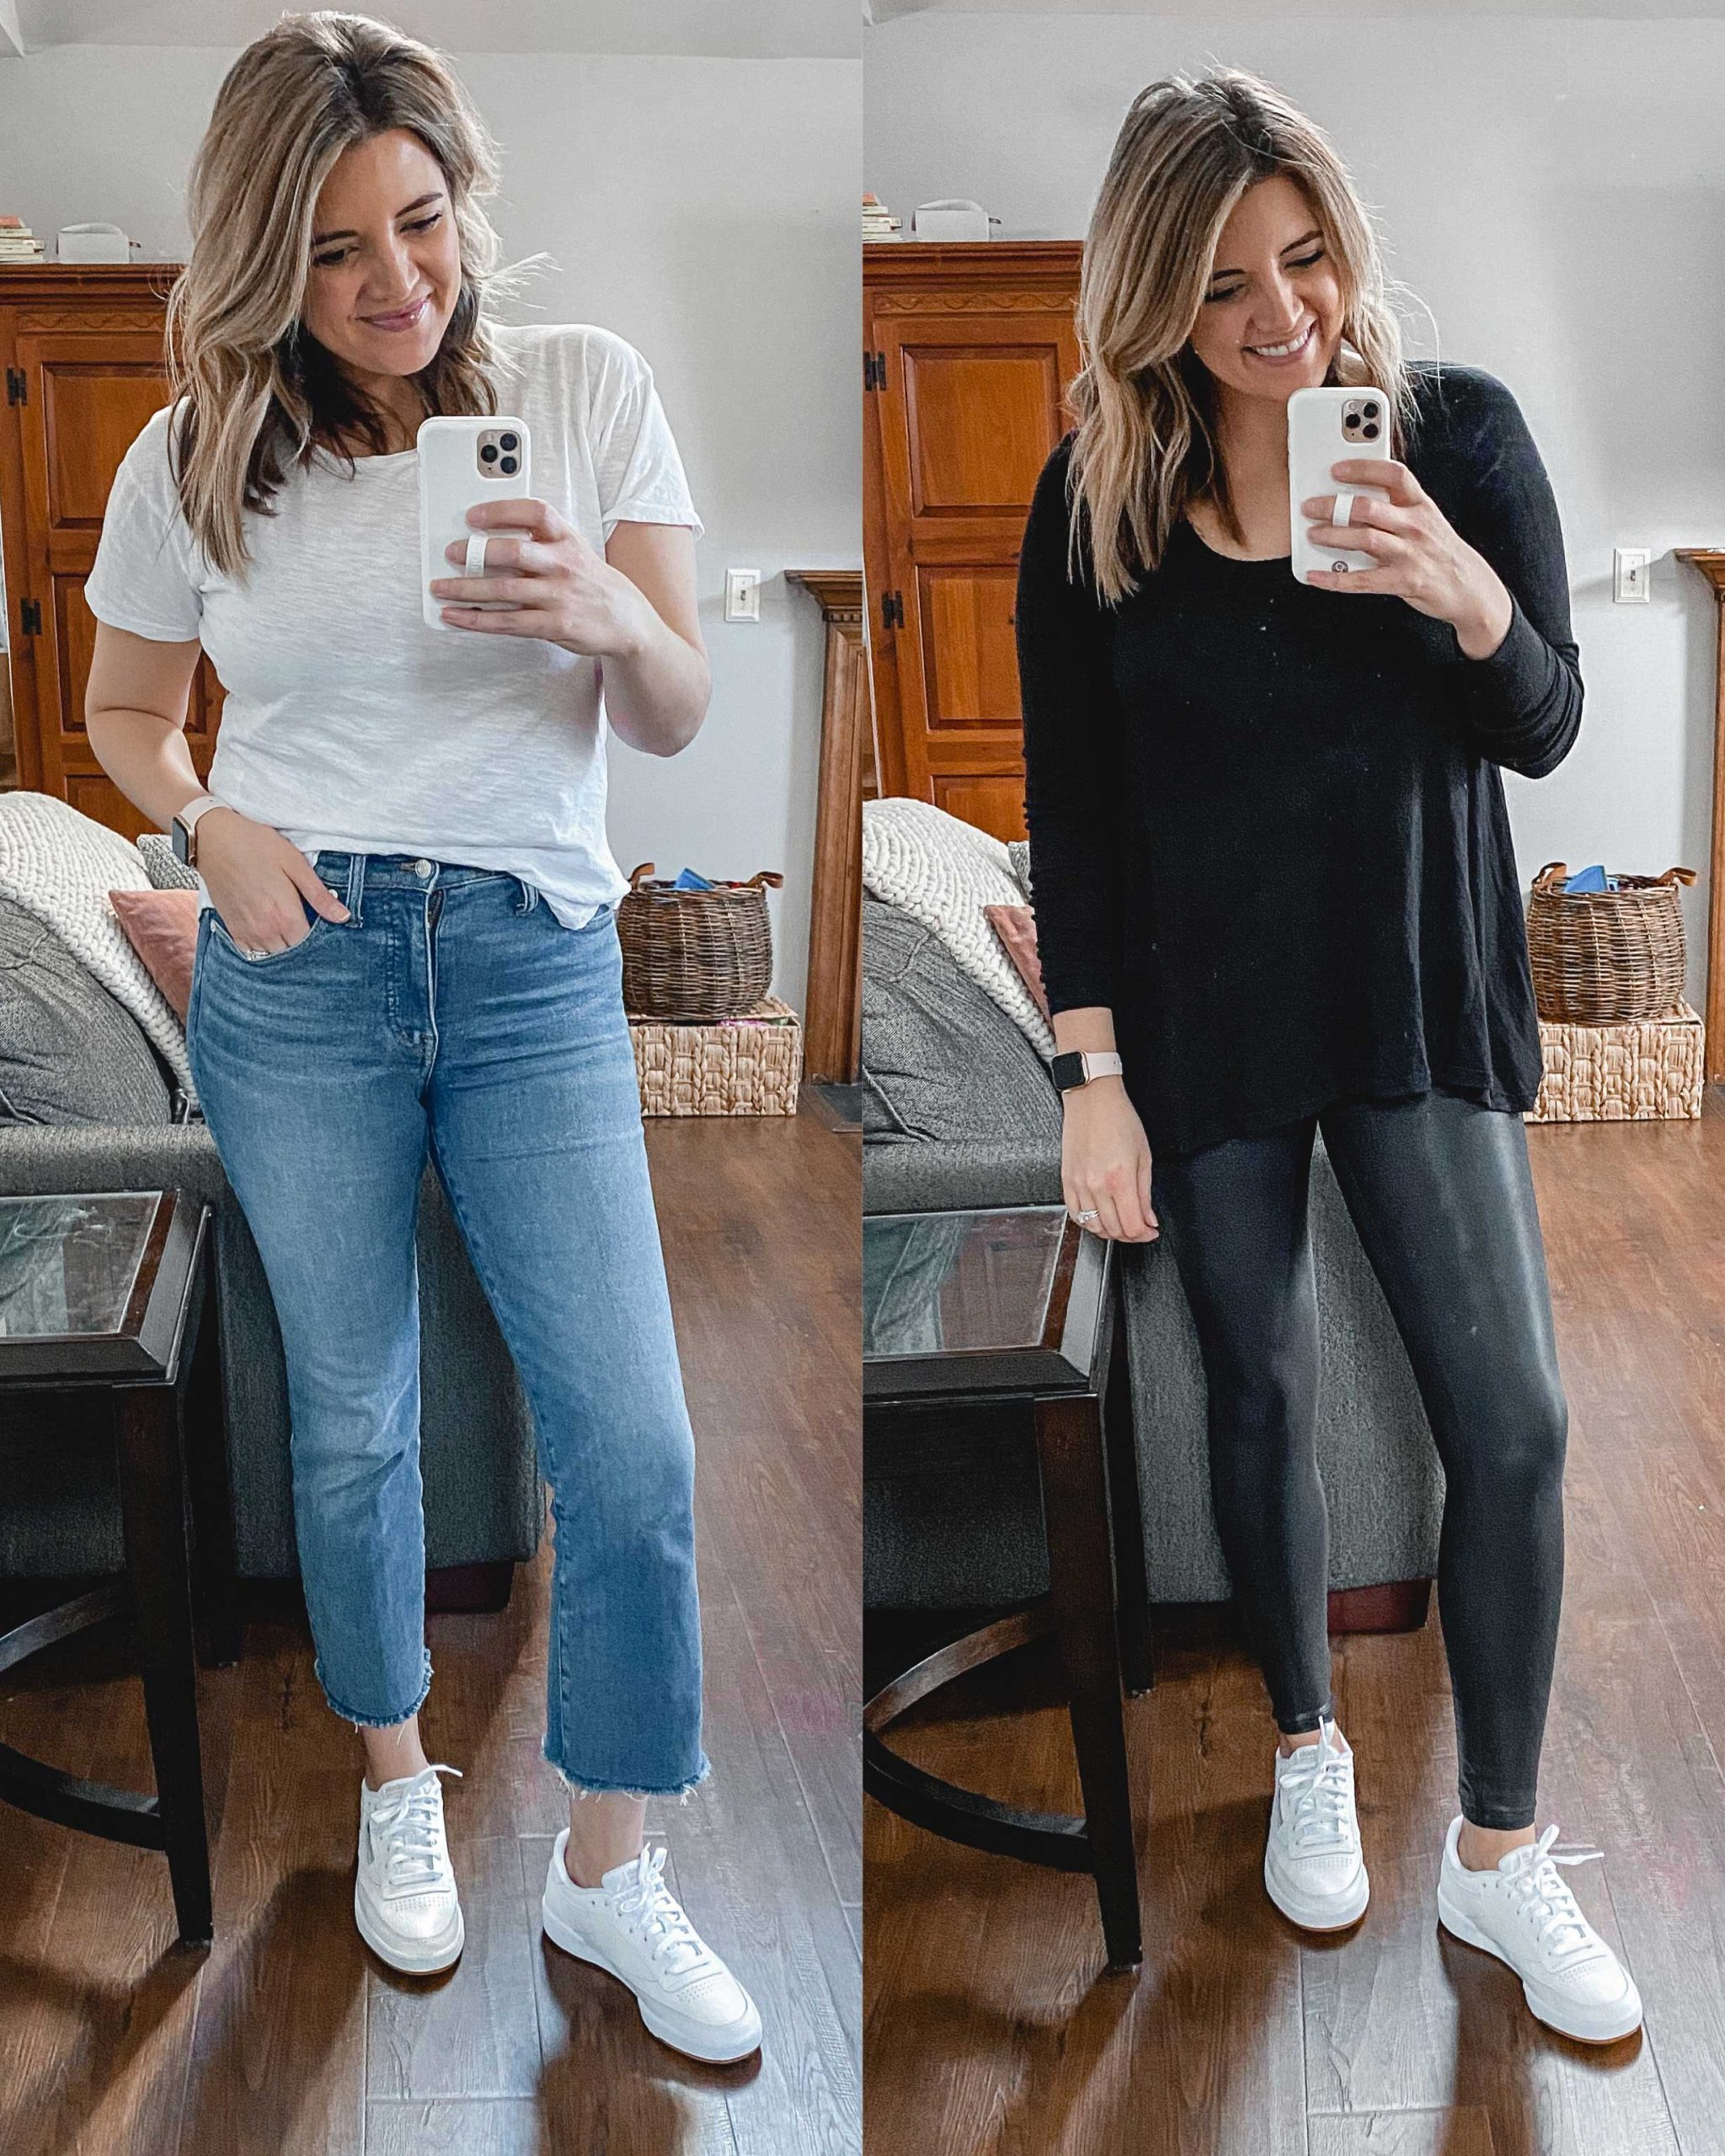 Virginia blogger, Lauren Dix, tries on 10 different pairs of white sneakers for the ultimate white sneaker review! She wears the Reebok Club C 85 sneakers with both jeans and leggings!